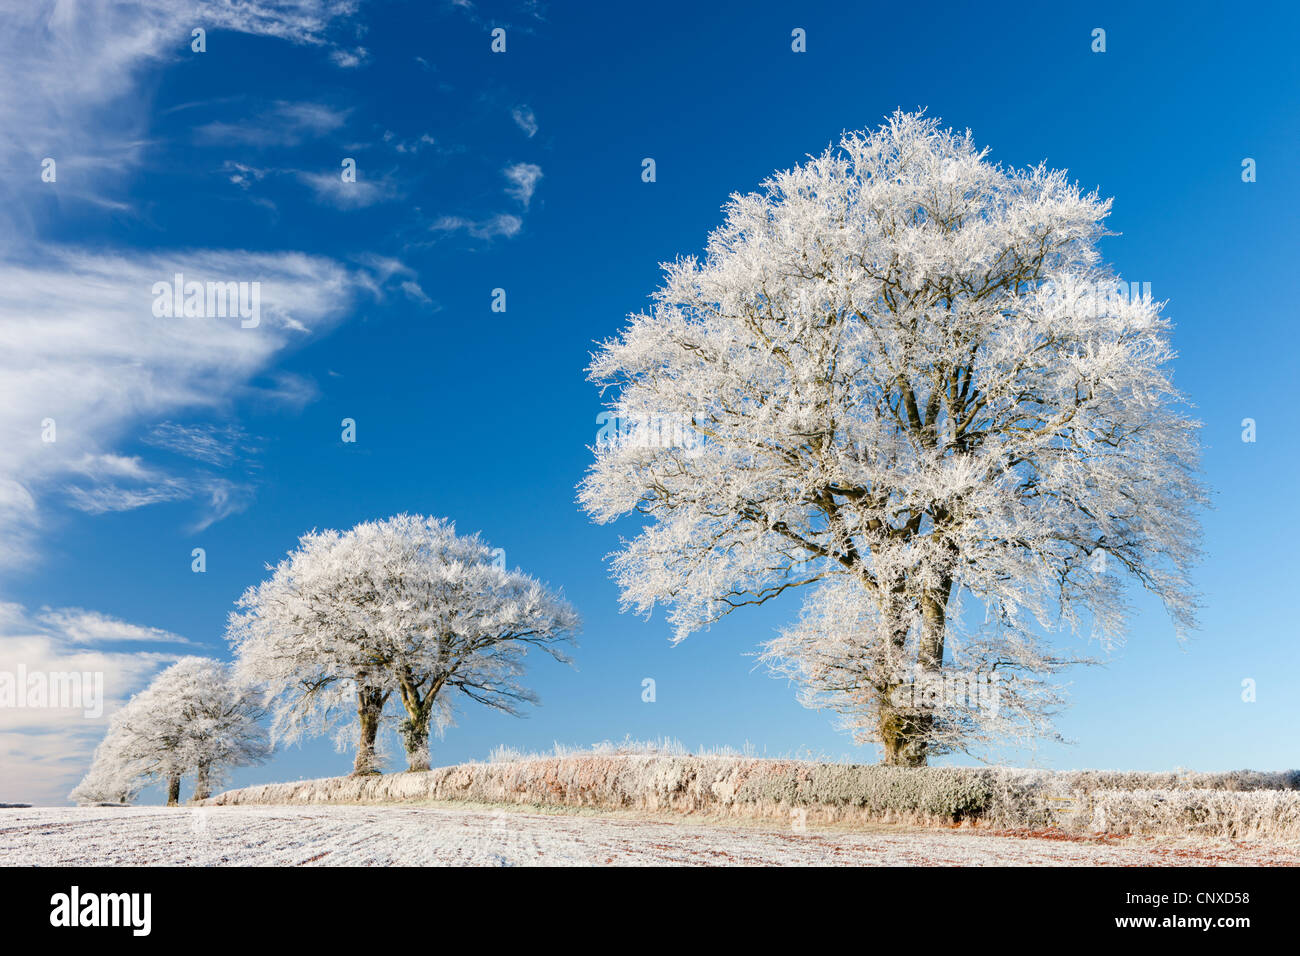 White hoar frosted trees on a cold winter morning, Bow, Devon, England. Winter (December) 2010. - Stock Image